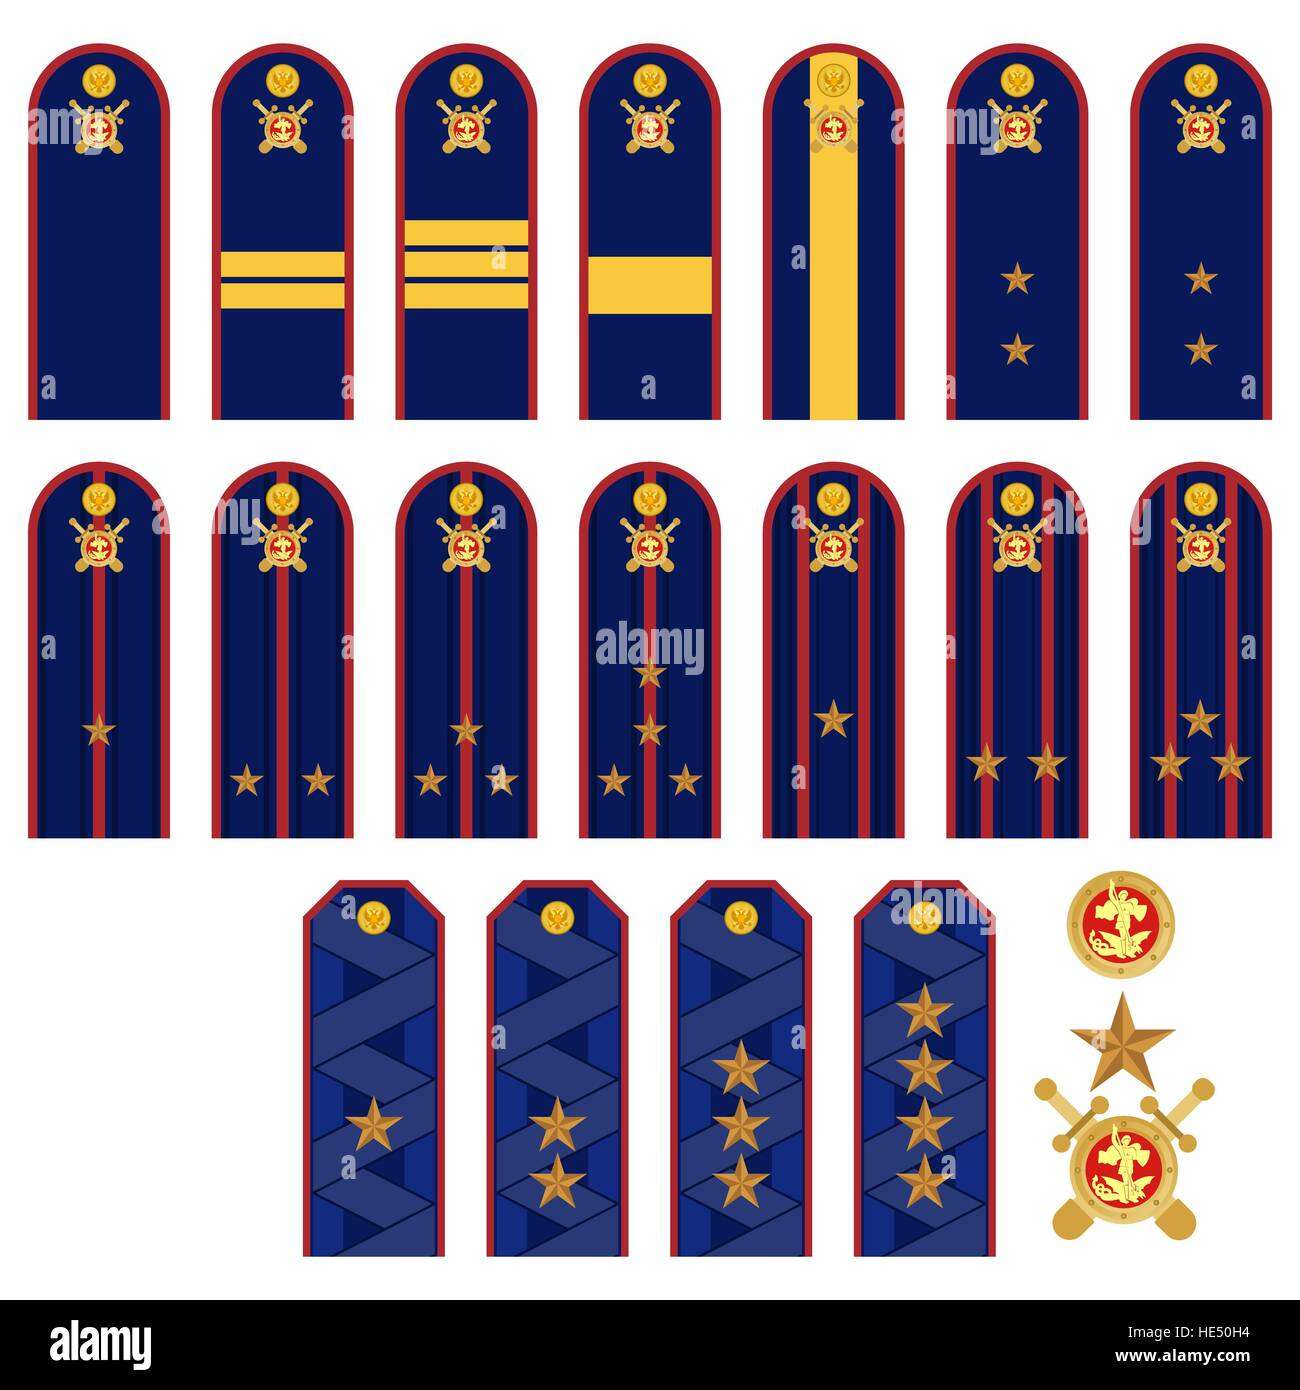 Insignia Police Officers In Russia The Illustration On A